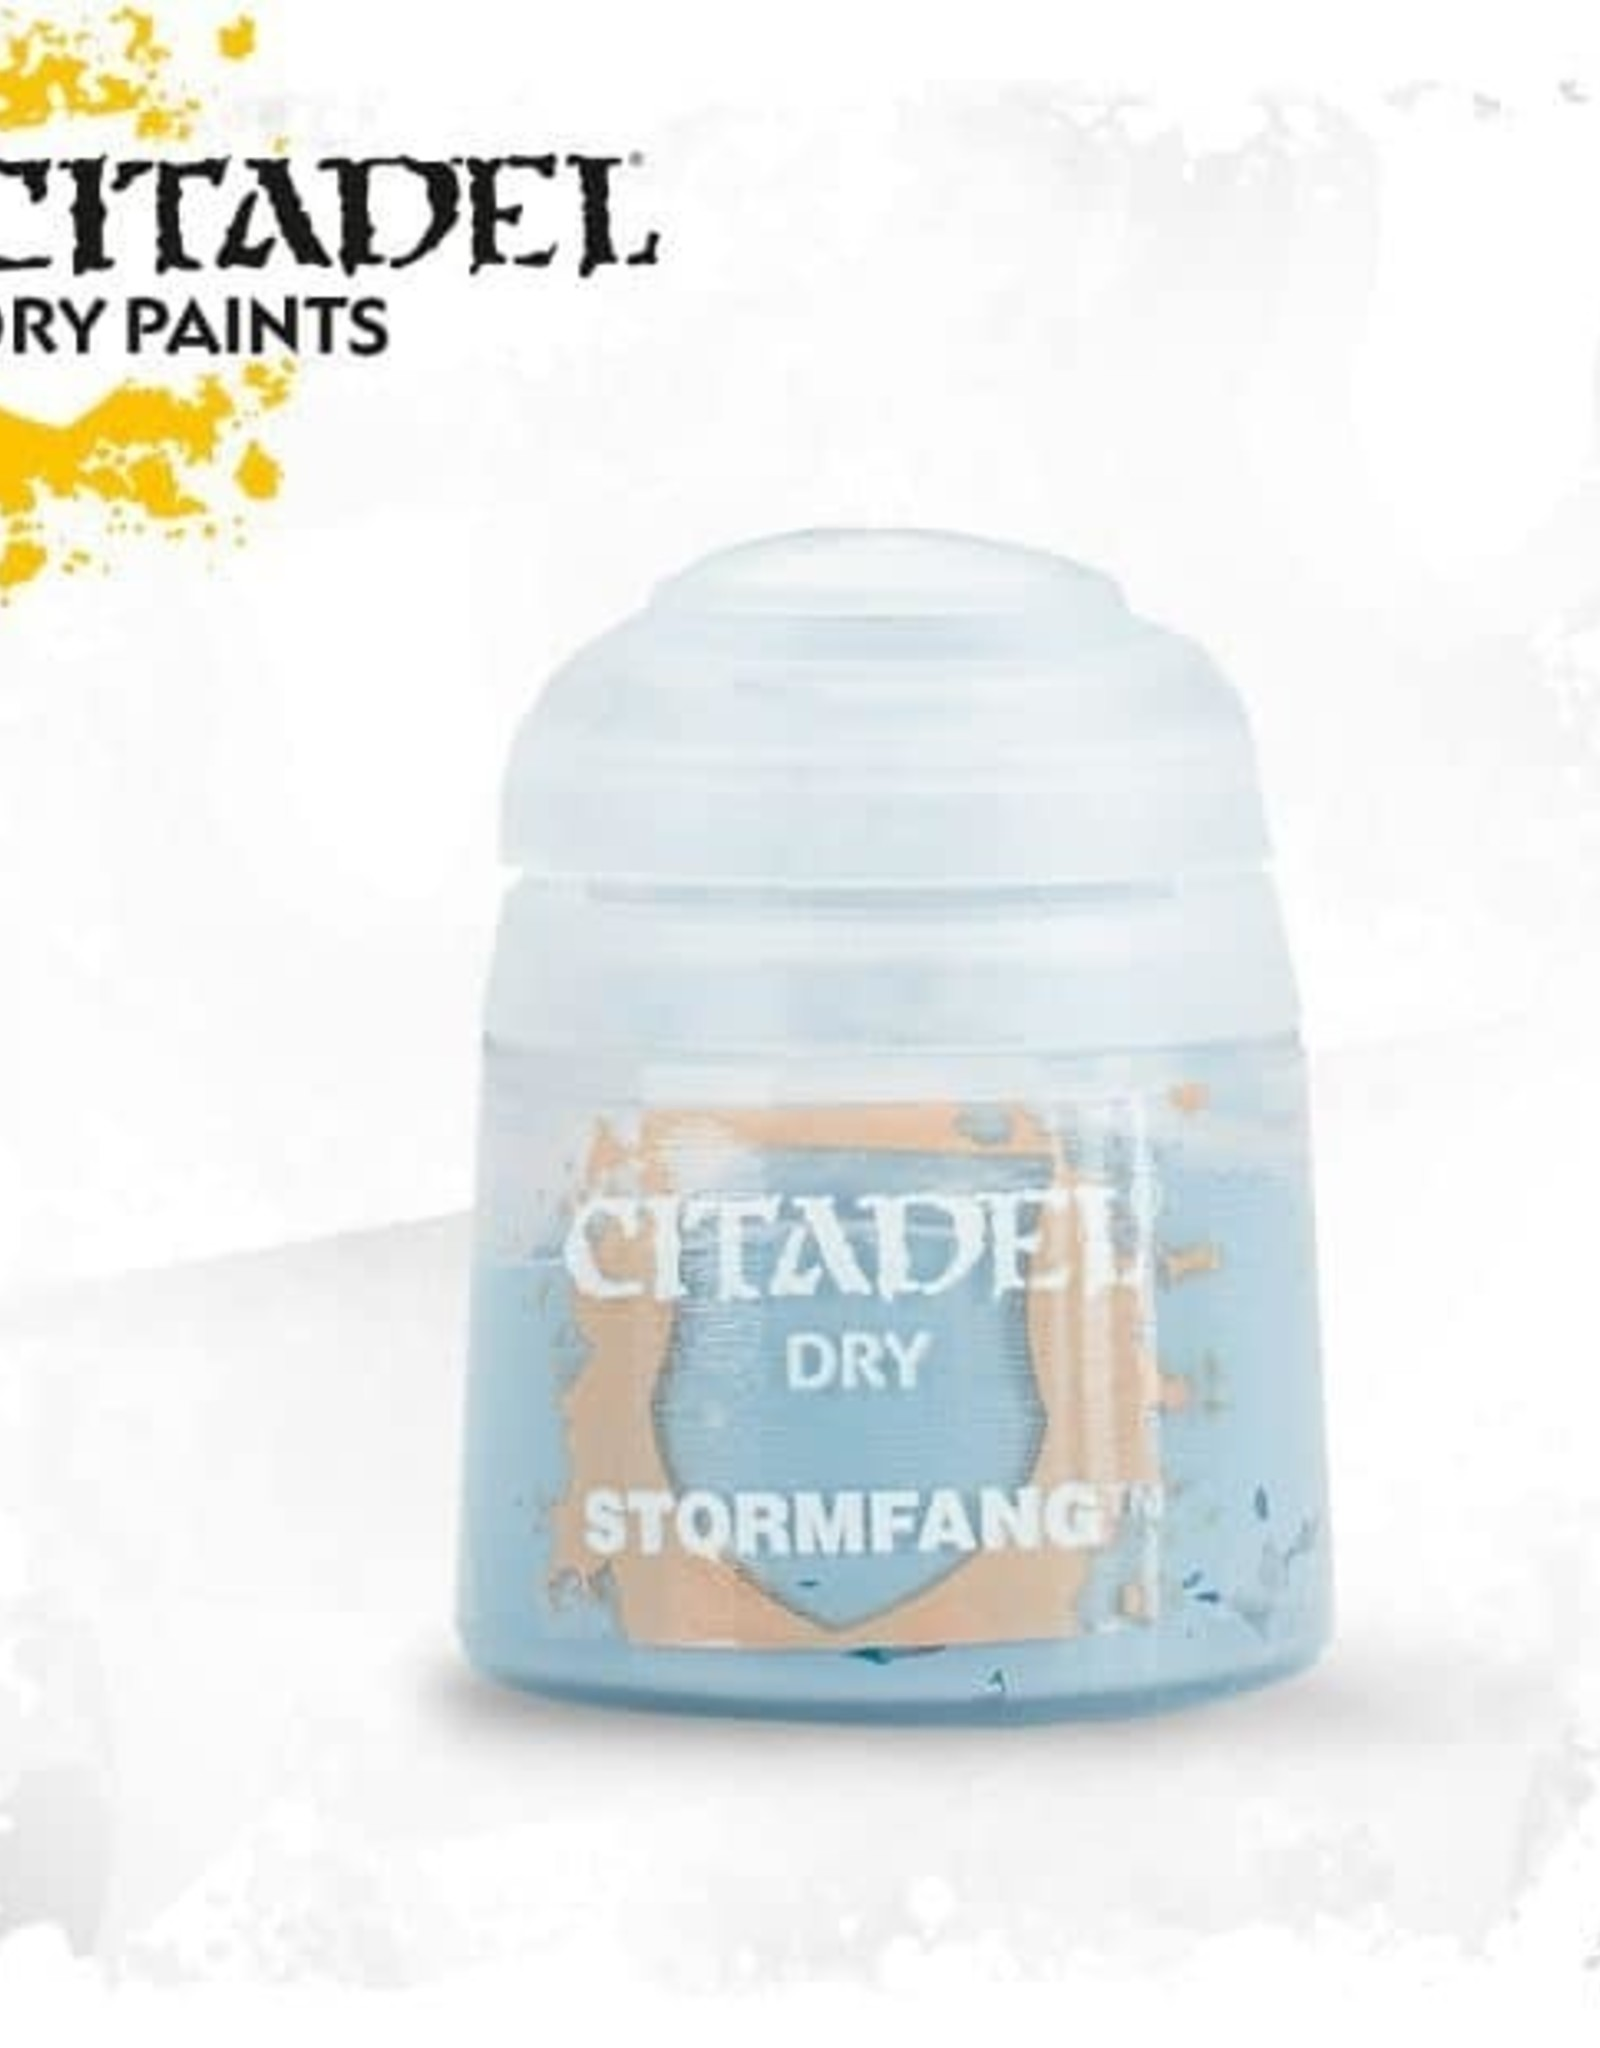 Games Workshop Citadel Paint: Dry - Stormfang